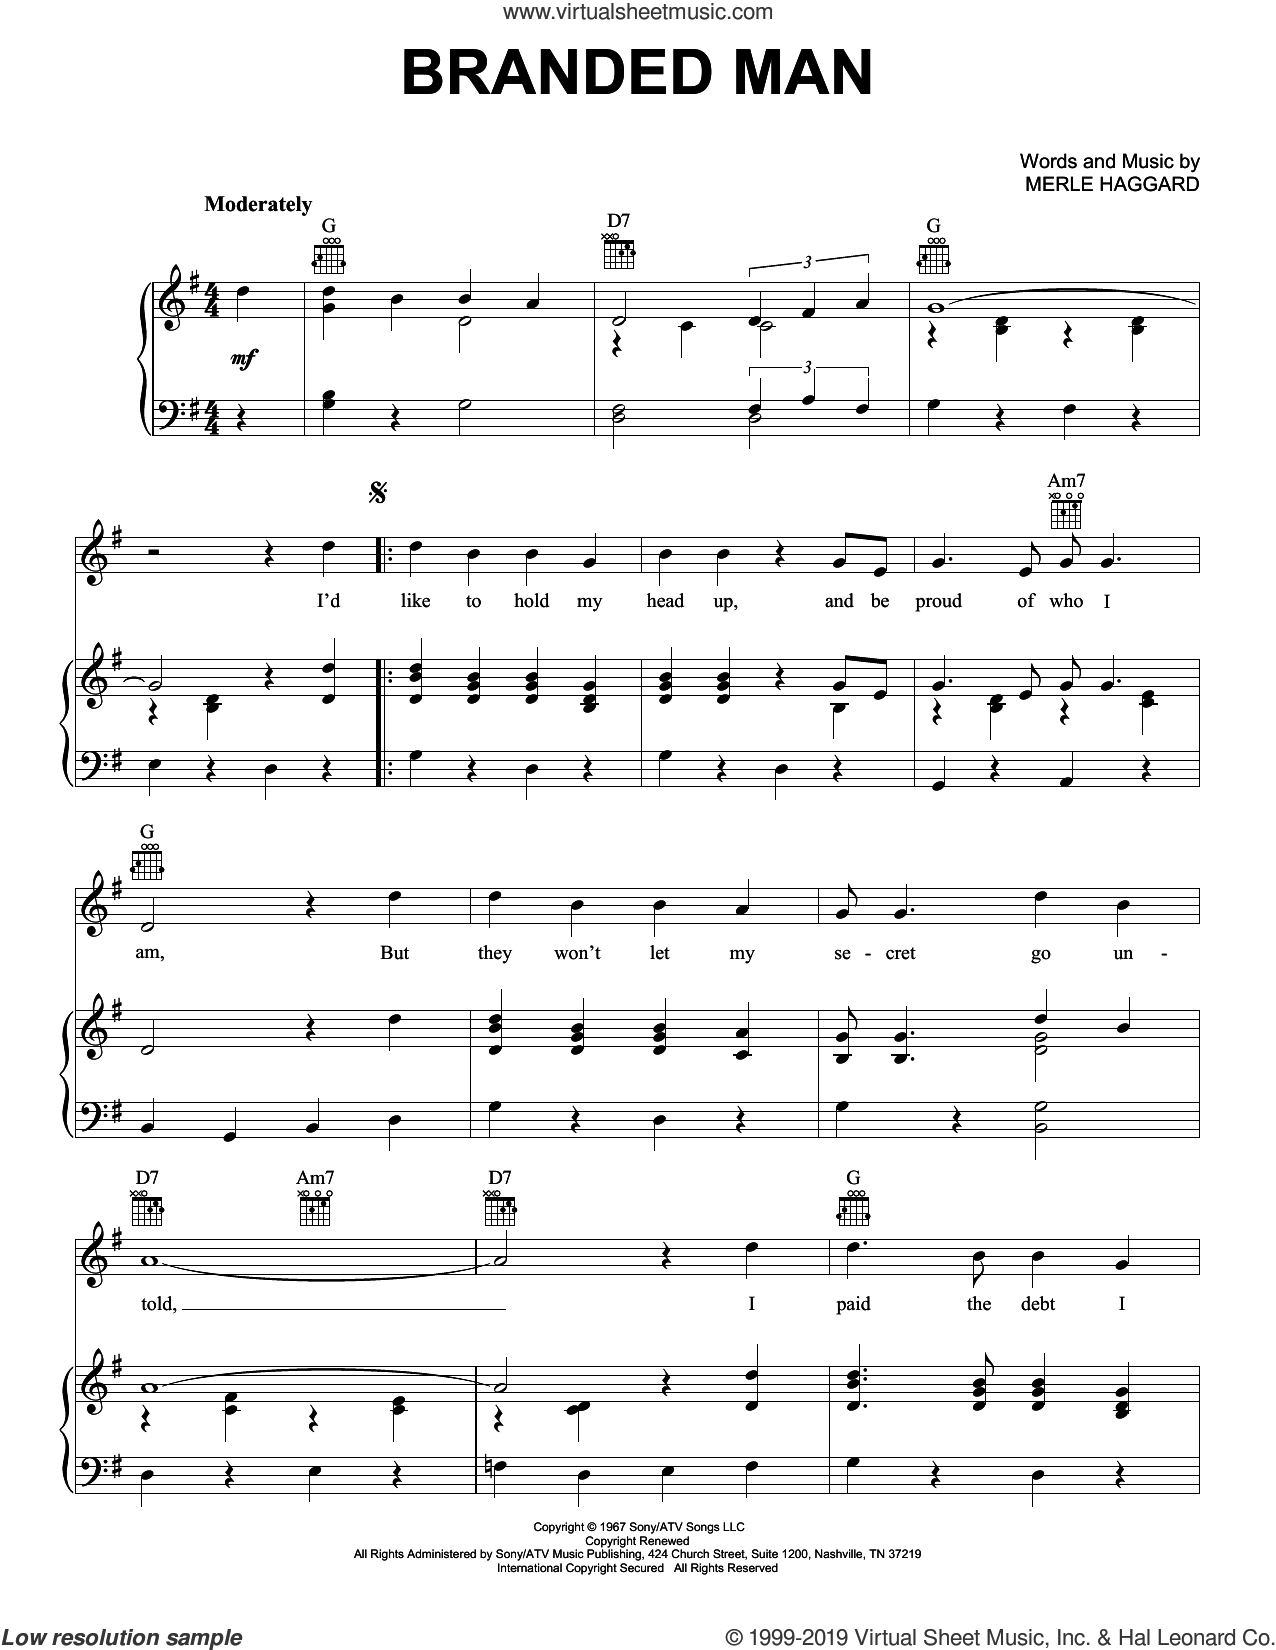 Branded Man sheet music for voice, piano or guitar by Merle Haggard, intermediate skill level